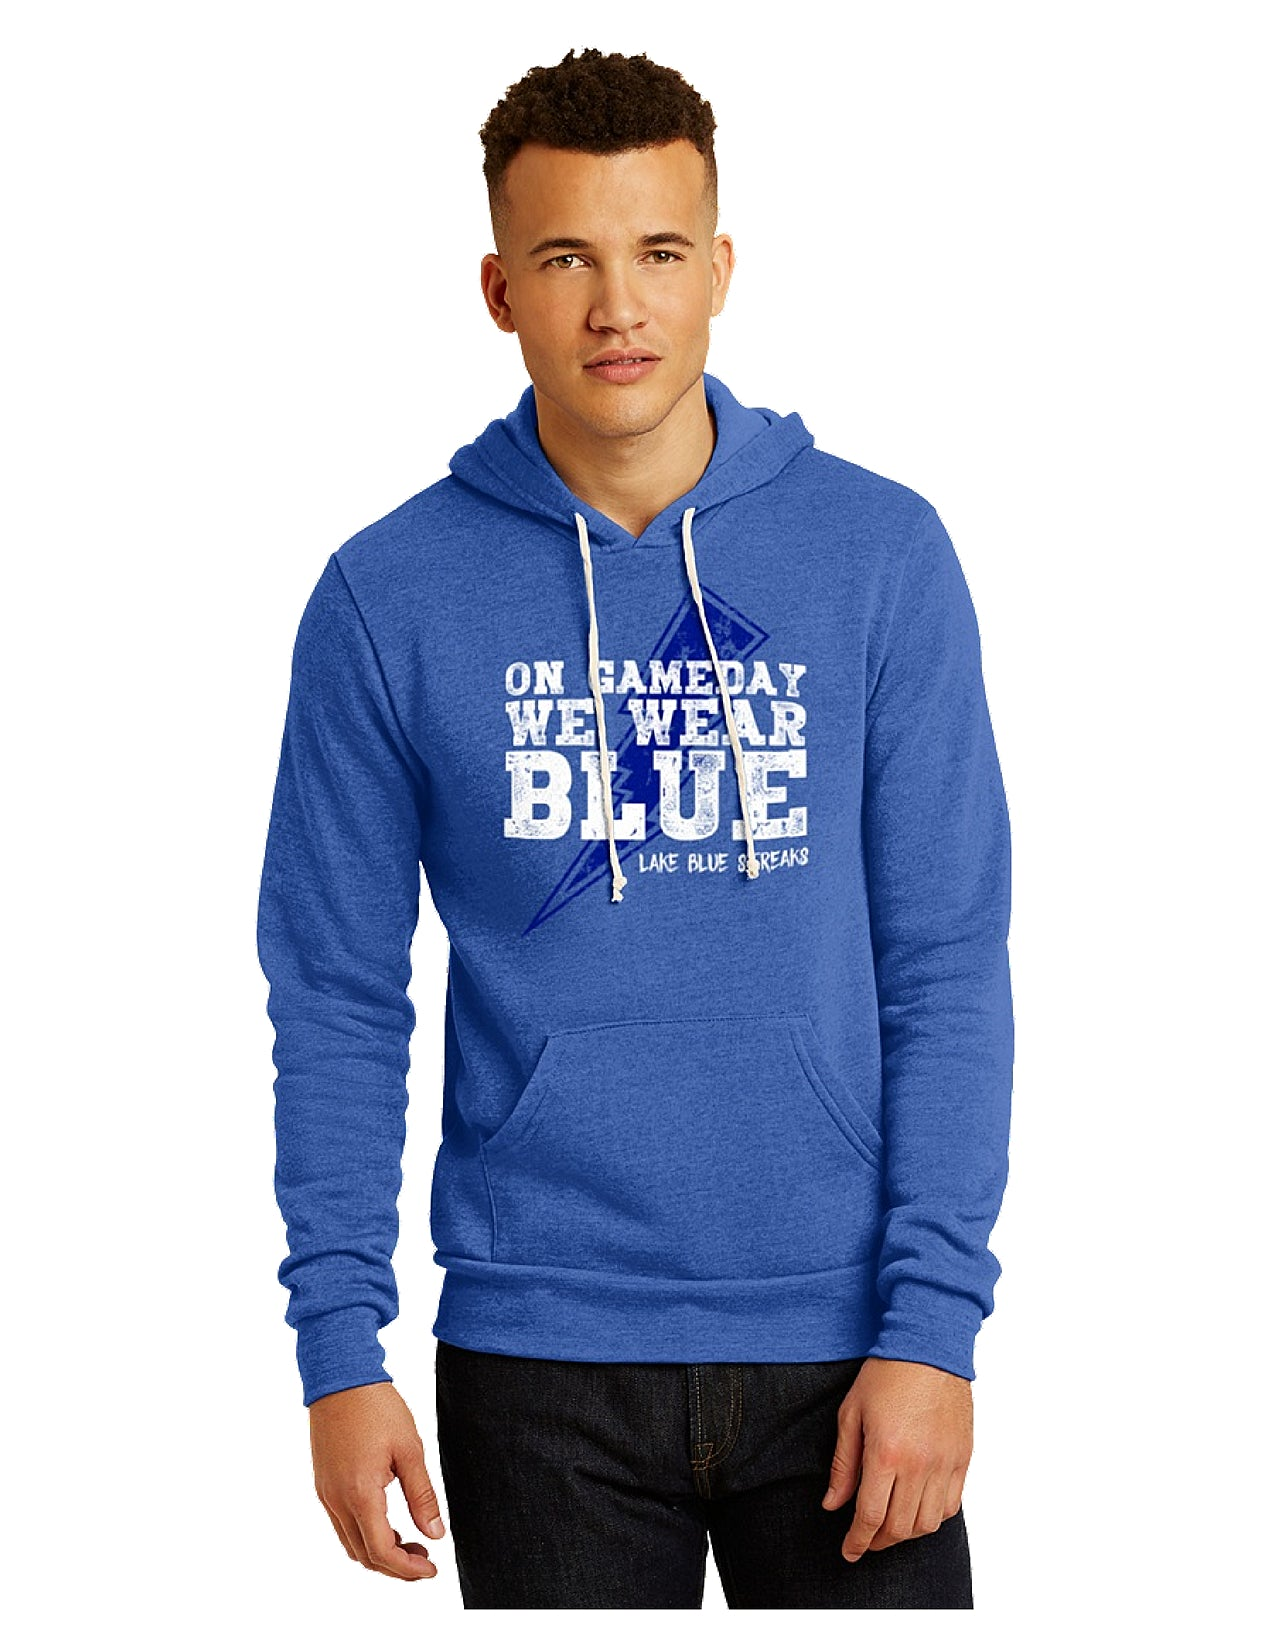 Triblend Fleece Pullover Hoodie - Game Day